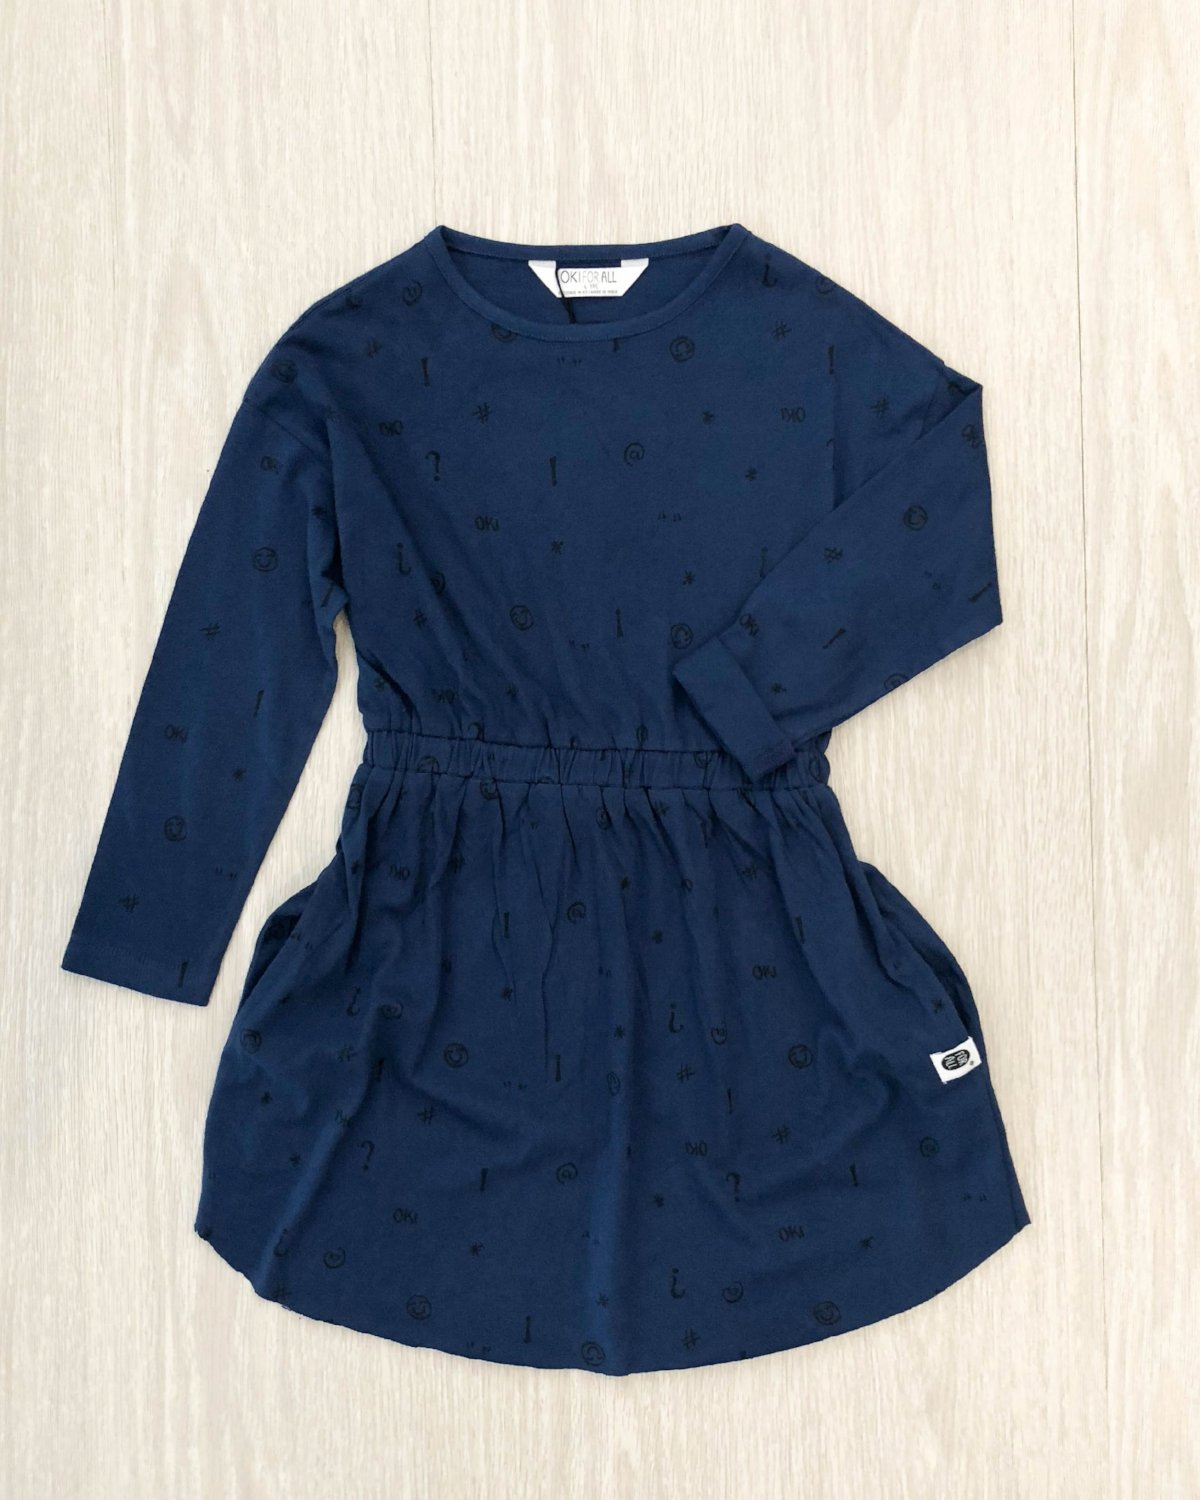 Organic Navy Printed Dress kids fashion OKI